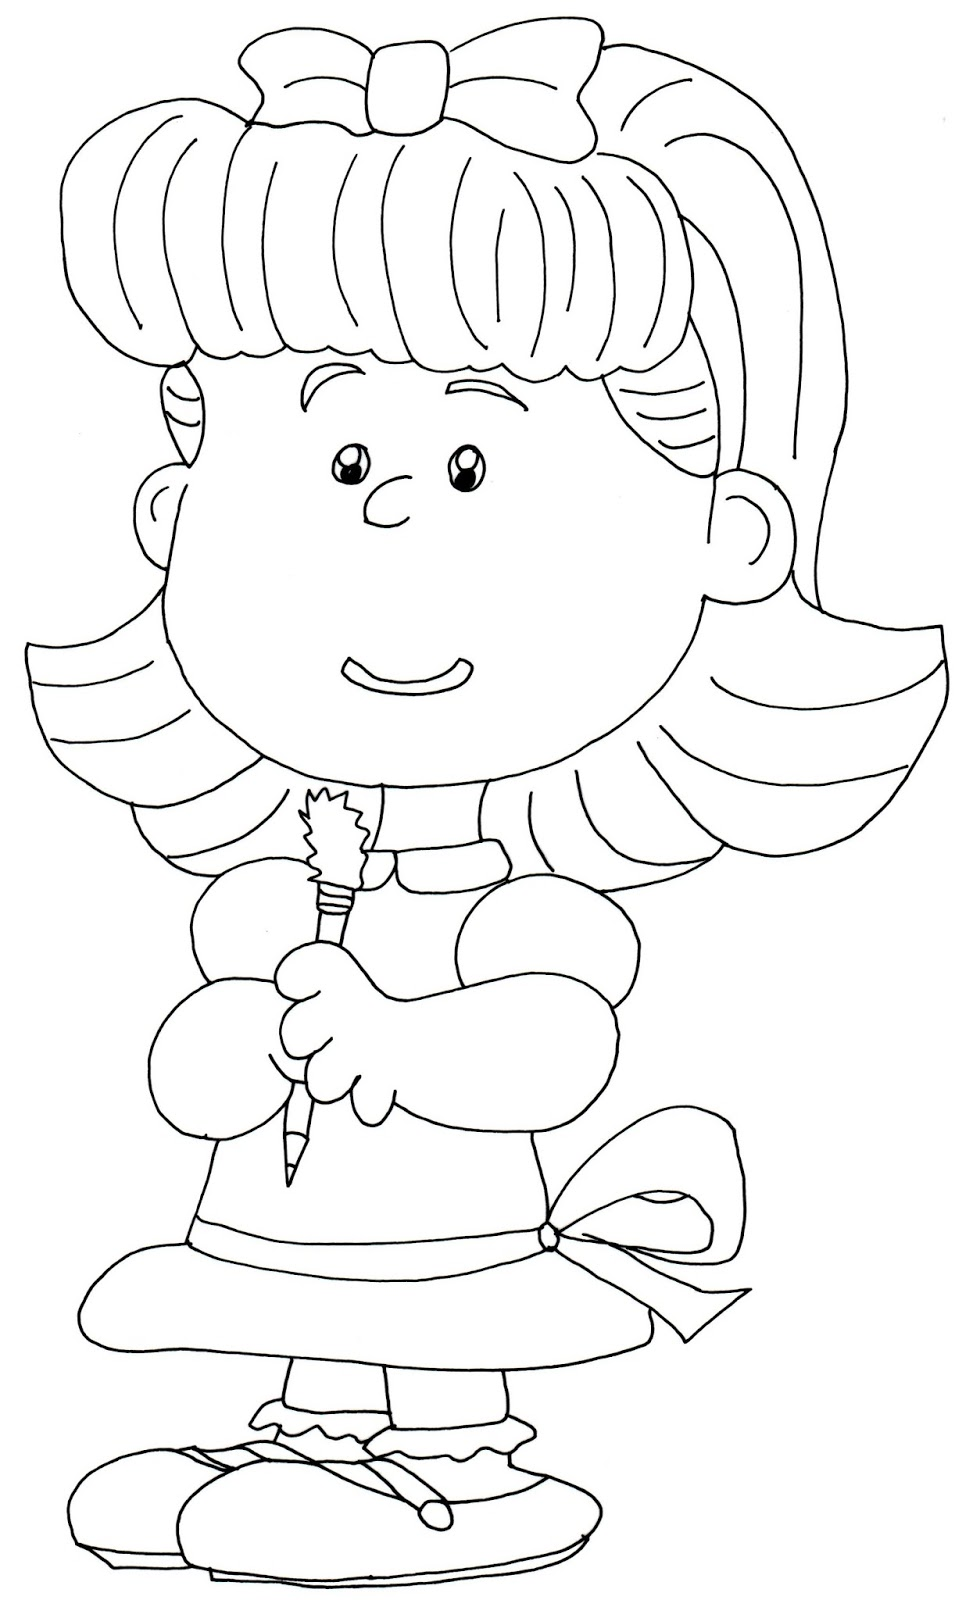 973x1600 Free Charlie Brown Snoopy And Peanuts Coloring Pages Charlie